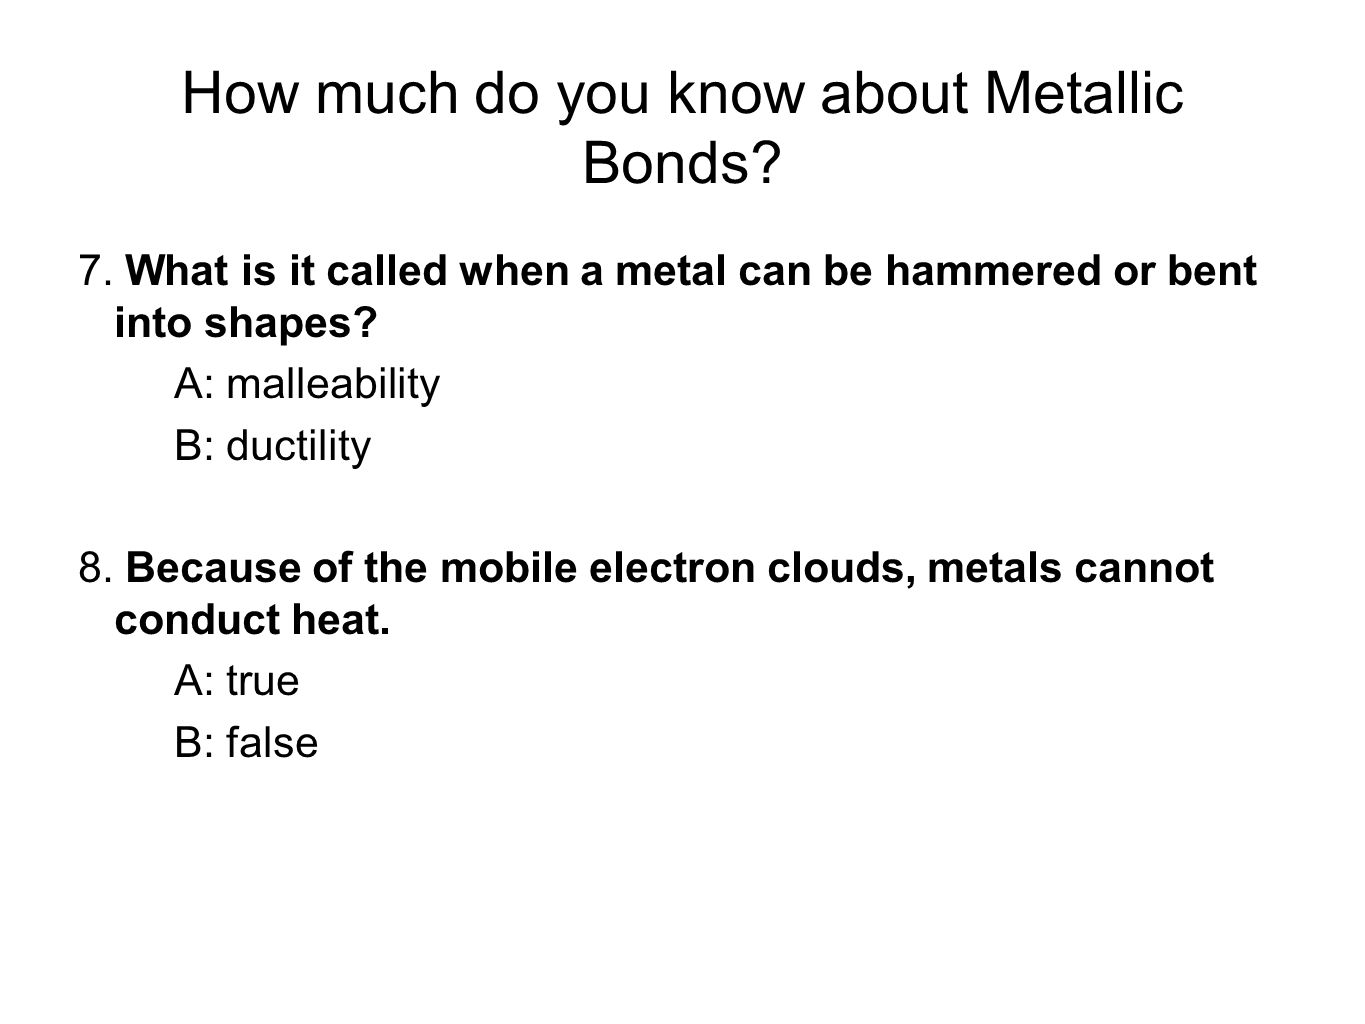 How much do you know about Metallic Bonds